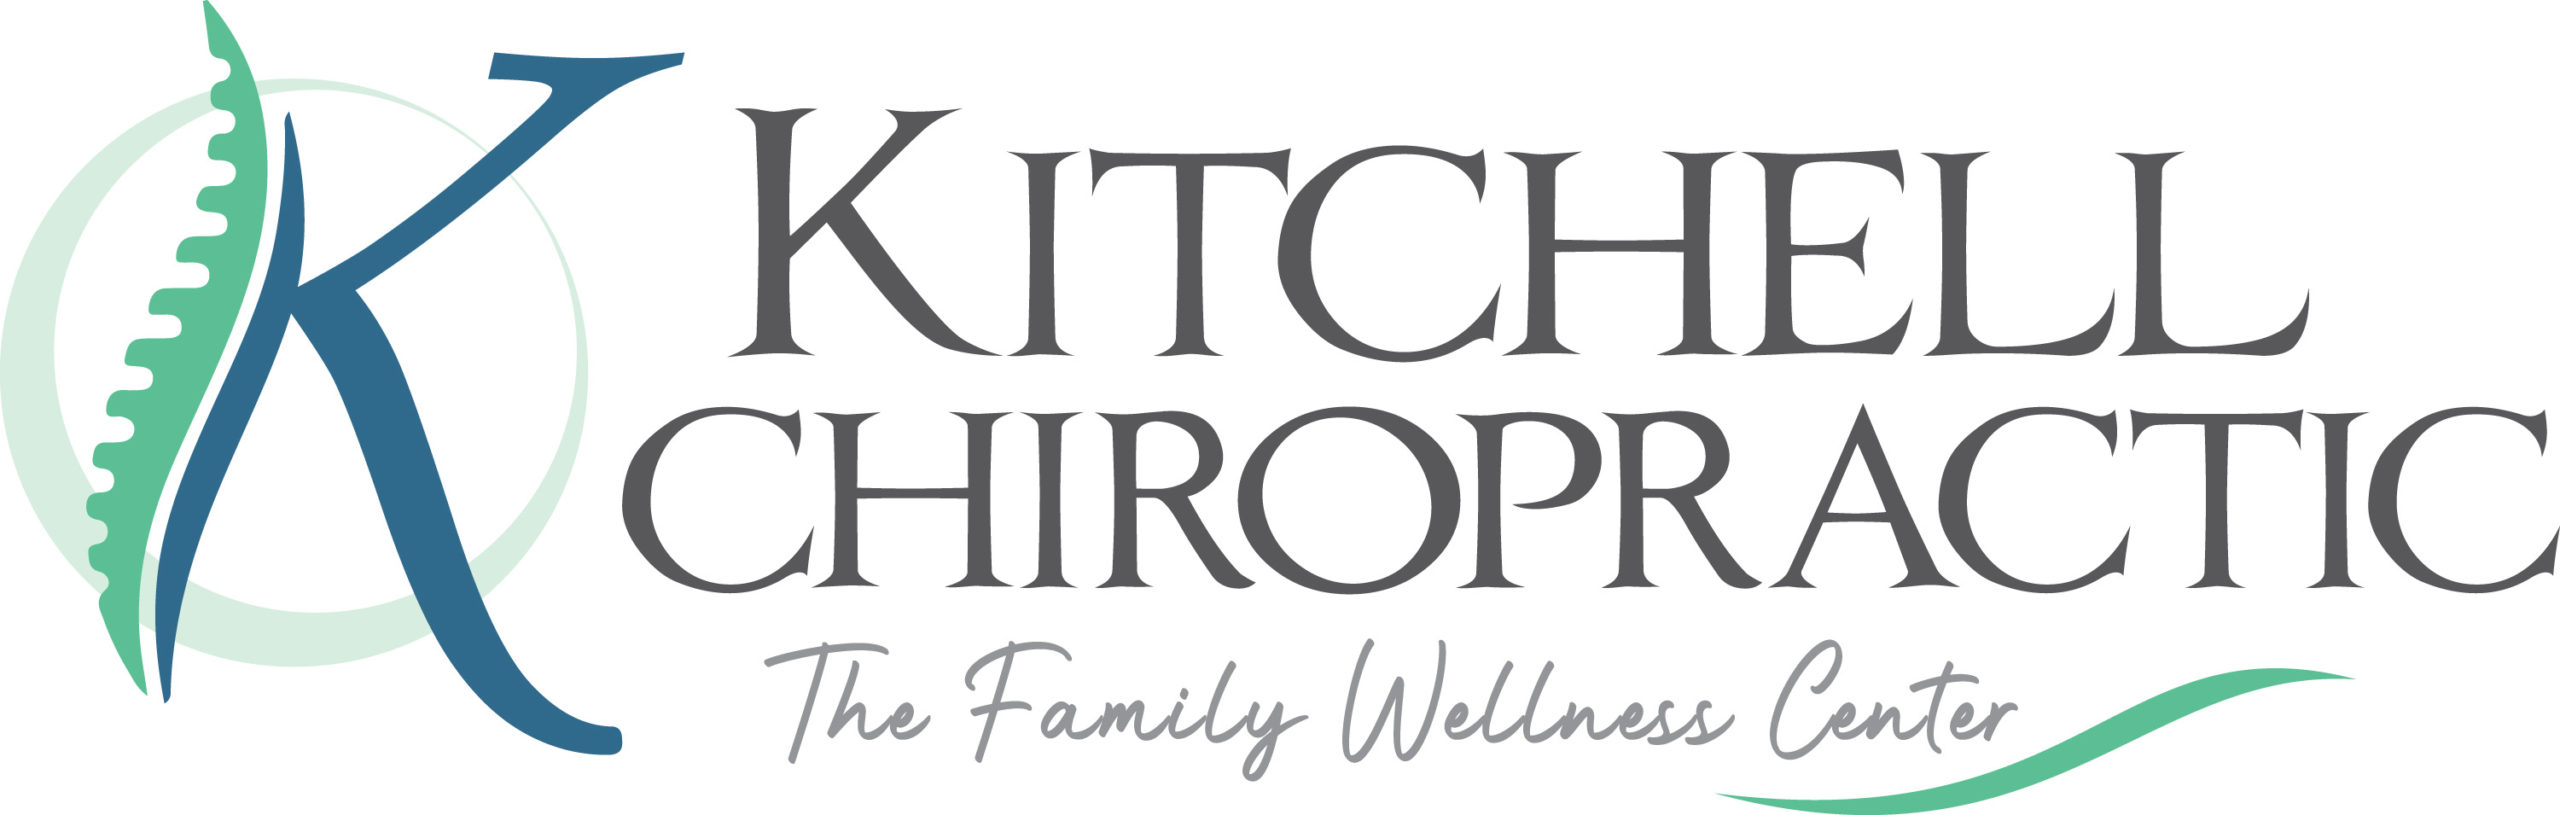 Kitchell Chiropractic logo